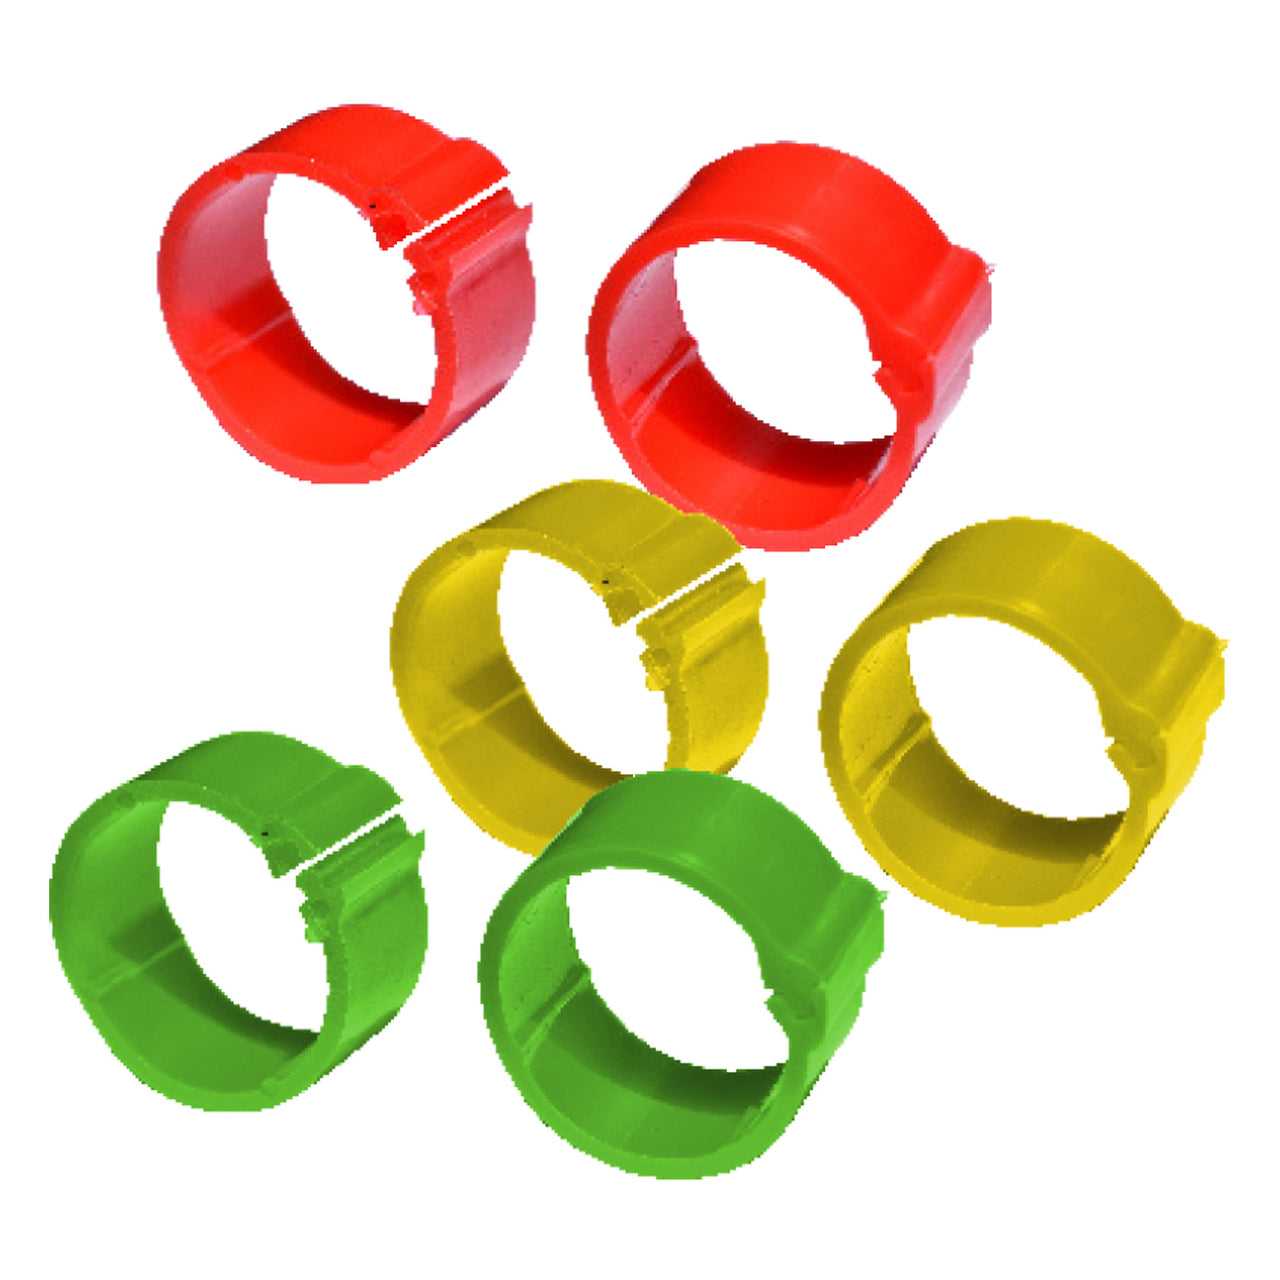 Tuff Stuff Poultry Ring Assorted Colours - Small (100 Pack) - Poultry Rings Tuff Stuff - Canada